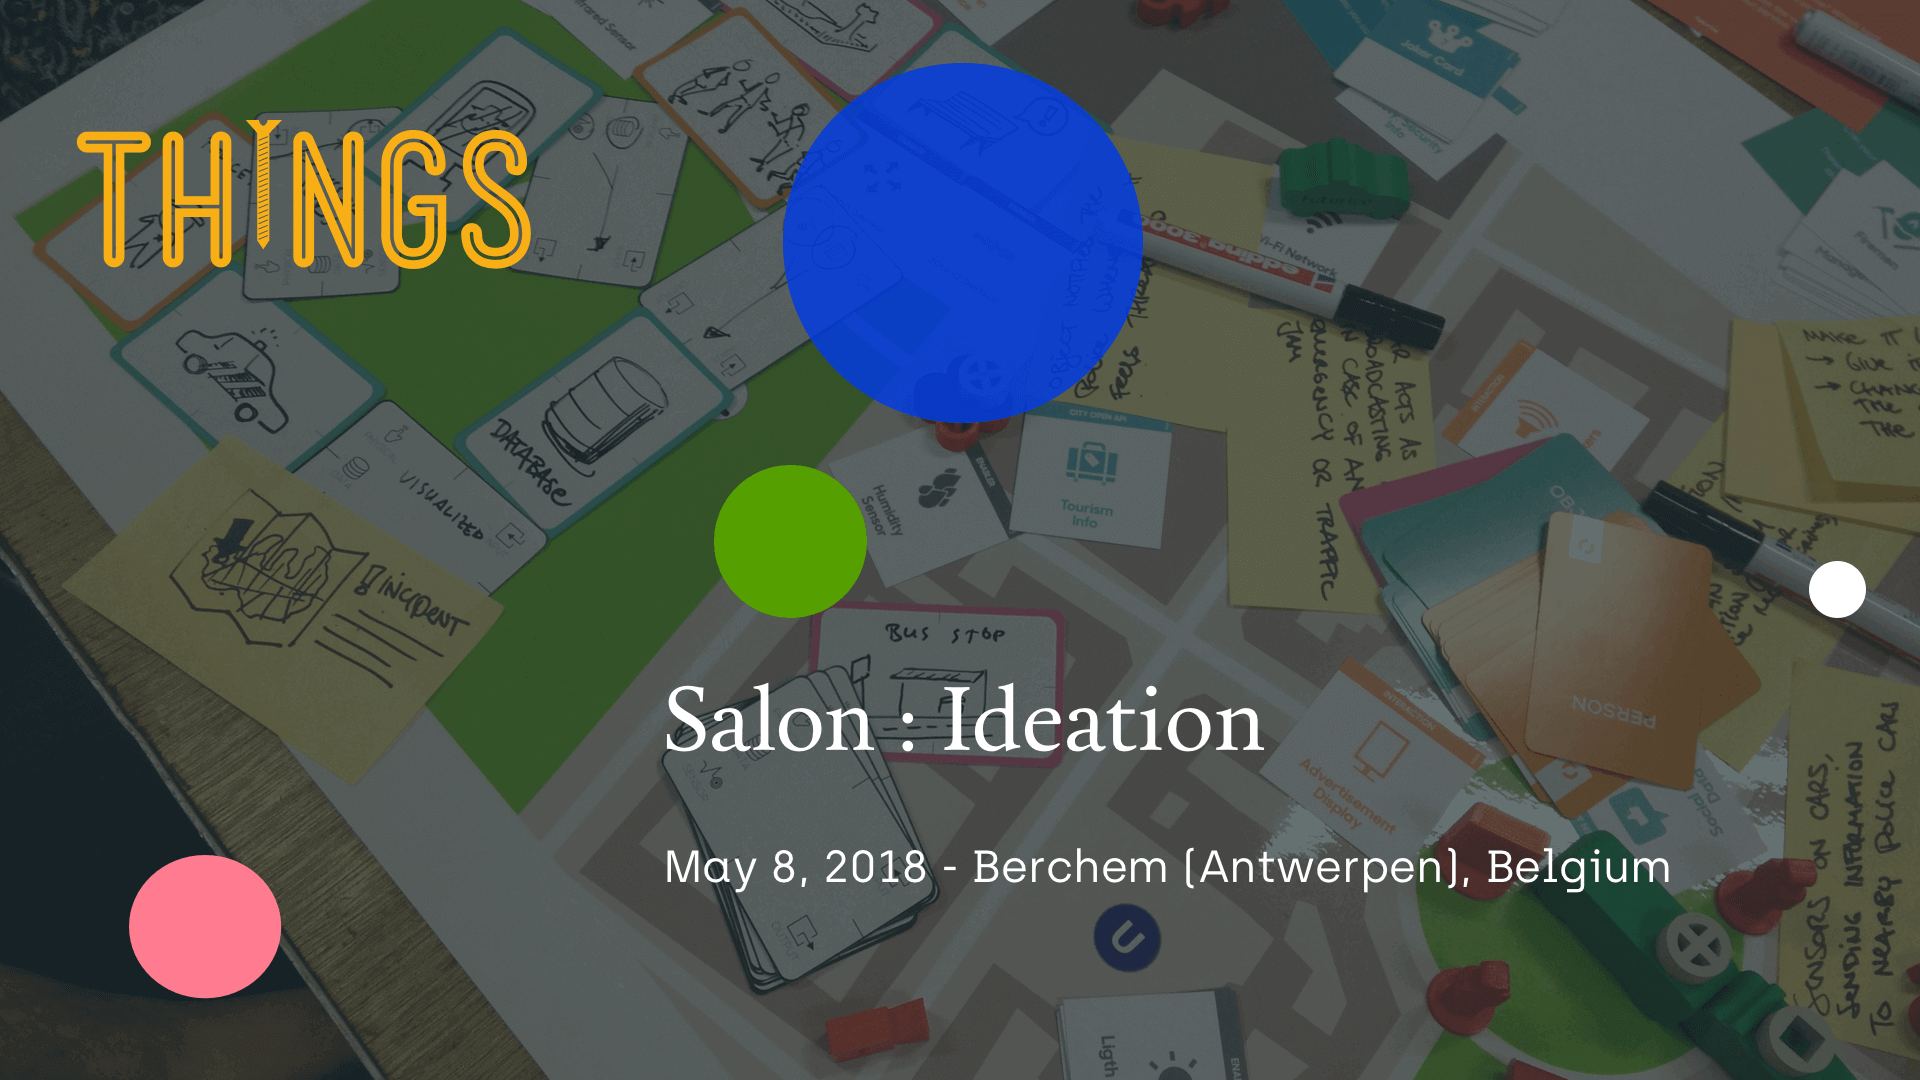 salonideation